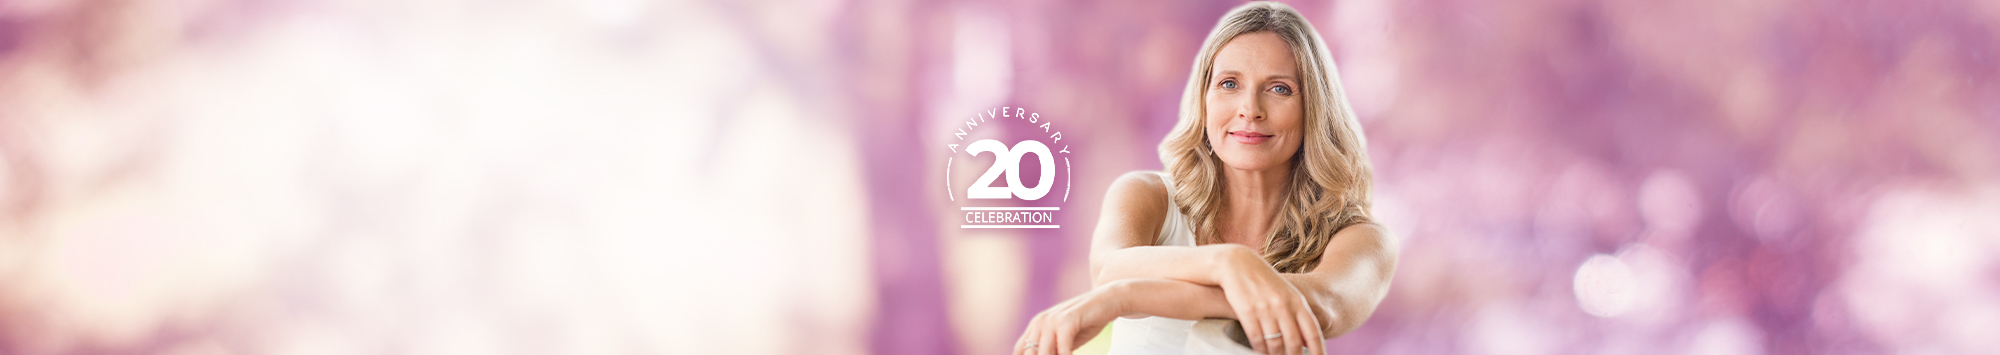 Best Psychics 20 years celebration